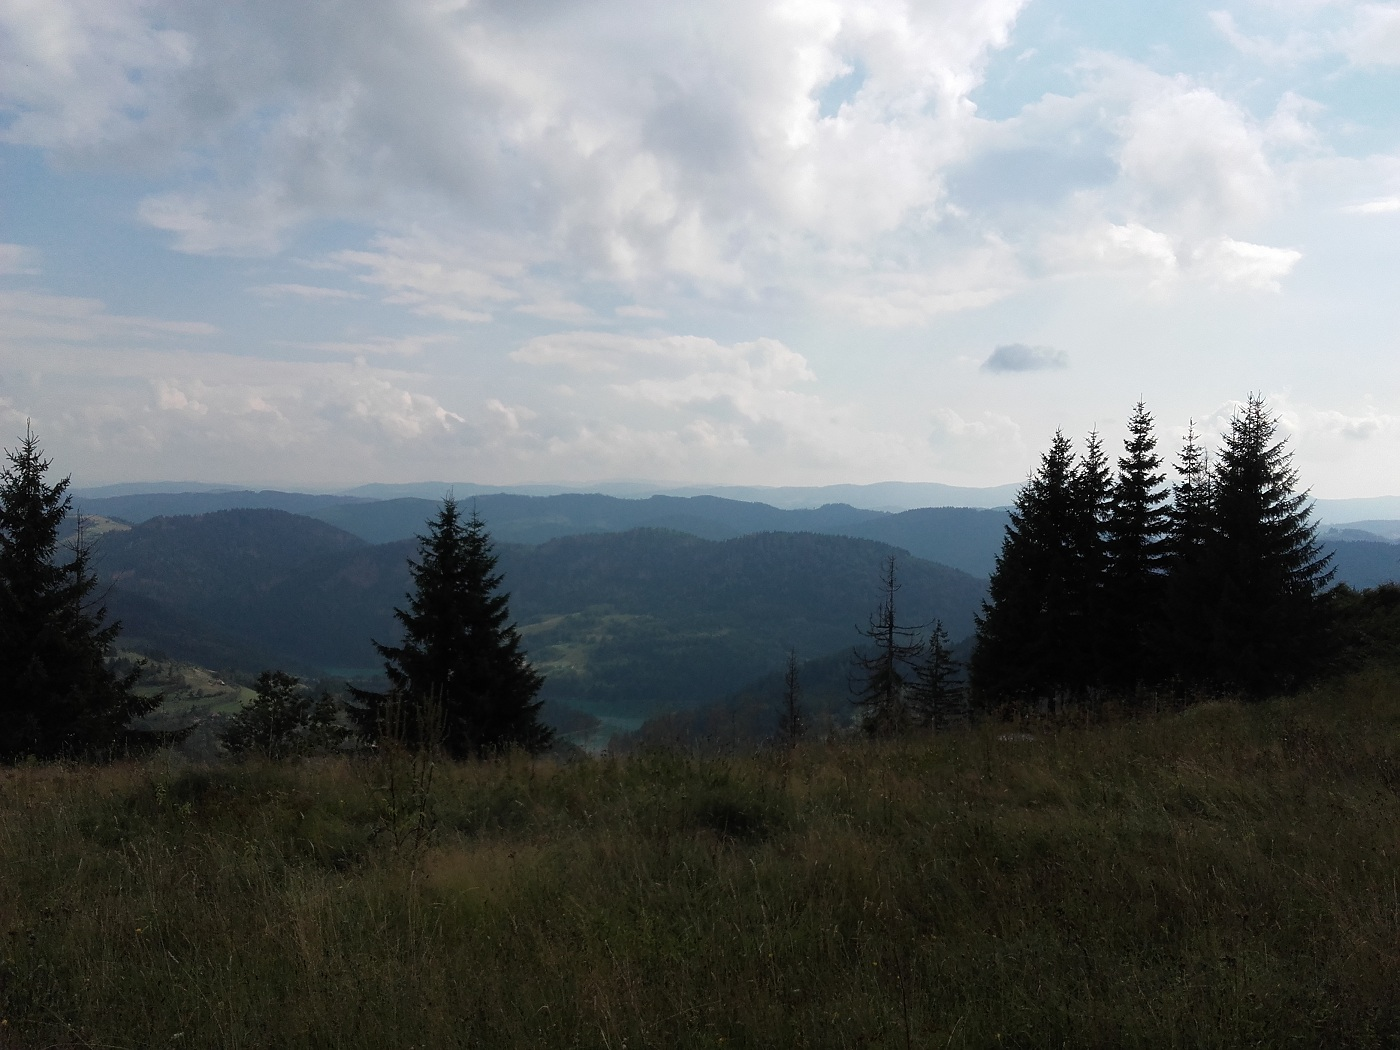 Golija Mountain Wilderness and Ivanjica Expedition